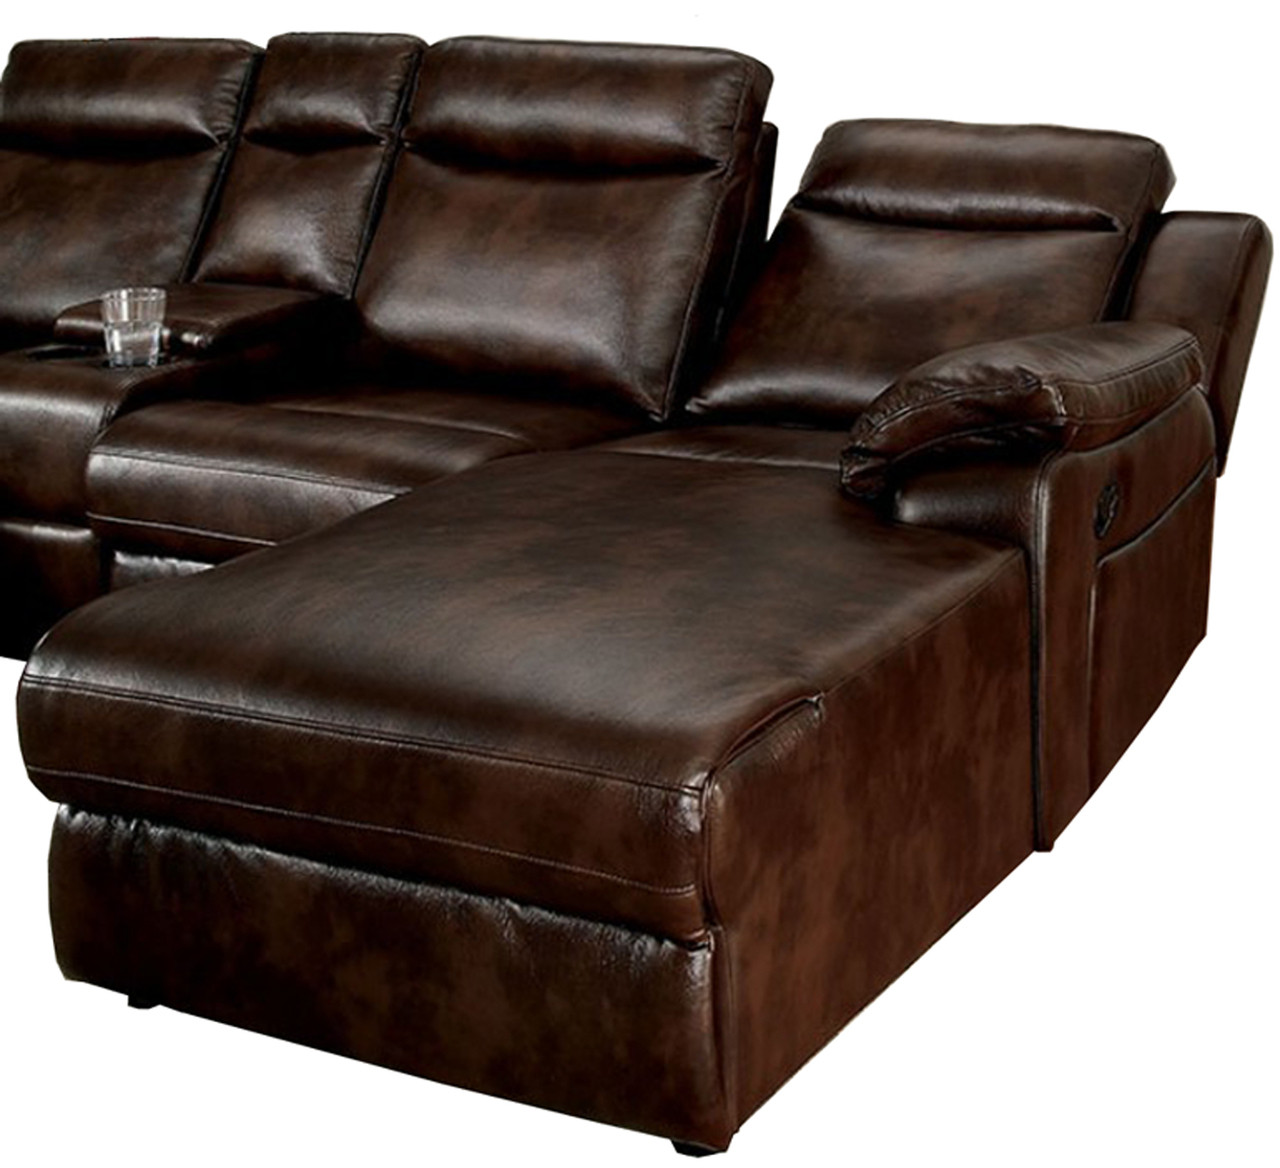 Cool Bison Brown Leatherette Sectional With Console Ibusinesslaw Wood Chair Design Ideas Ibusinesslaworg